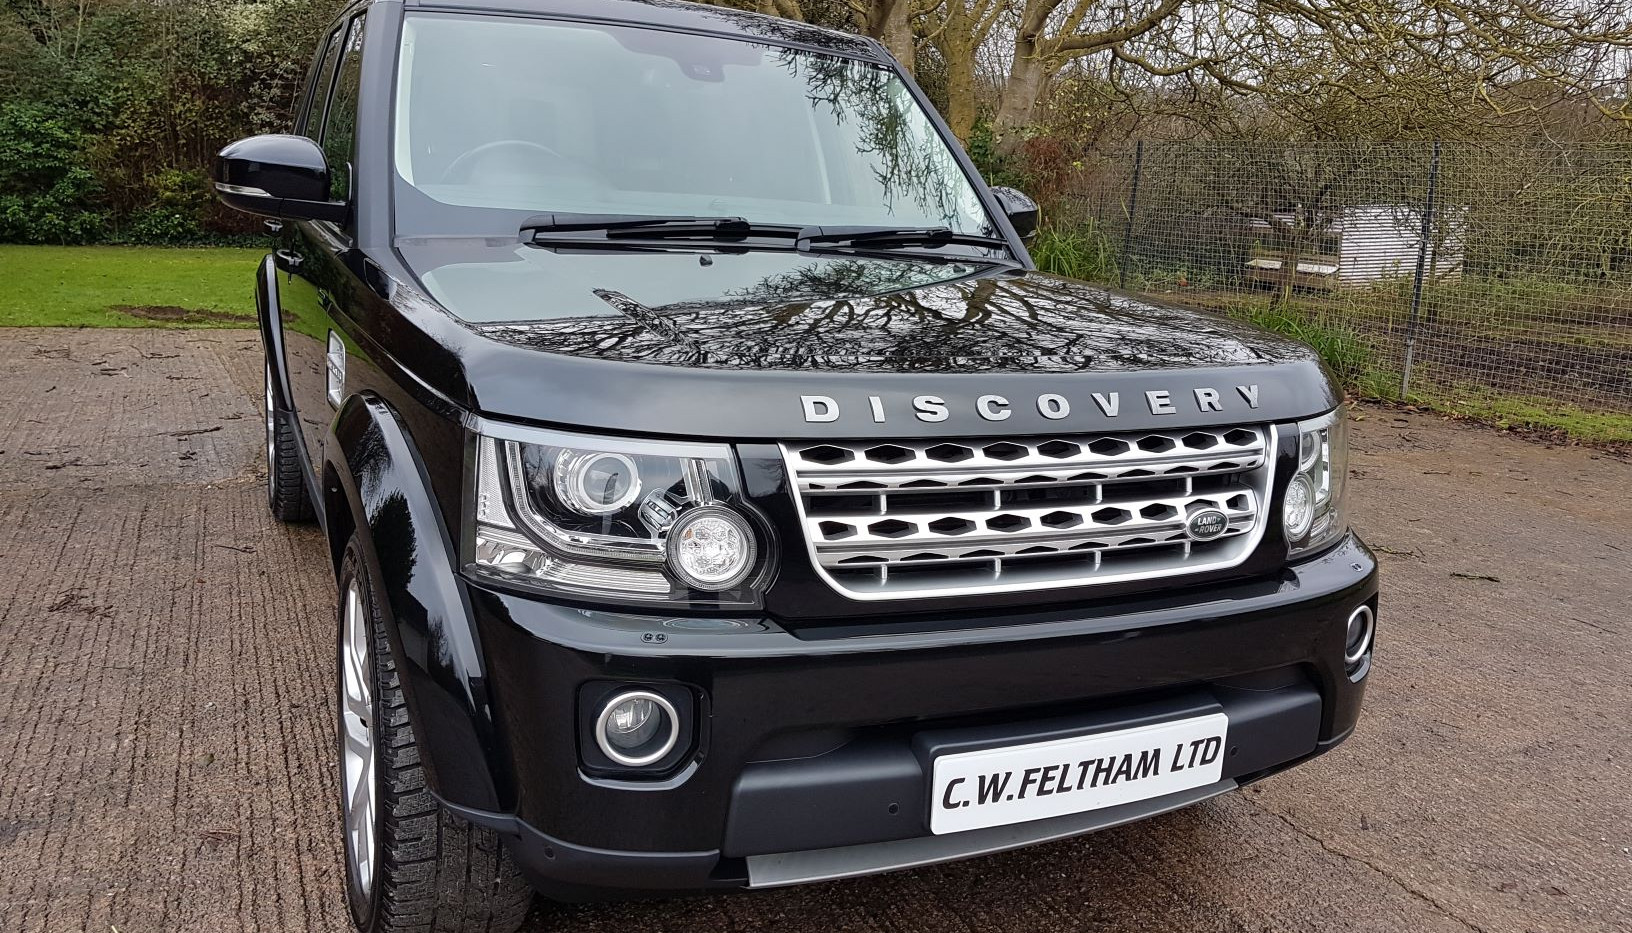 Land Rover Discovery 4 SD front rig